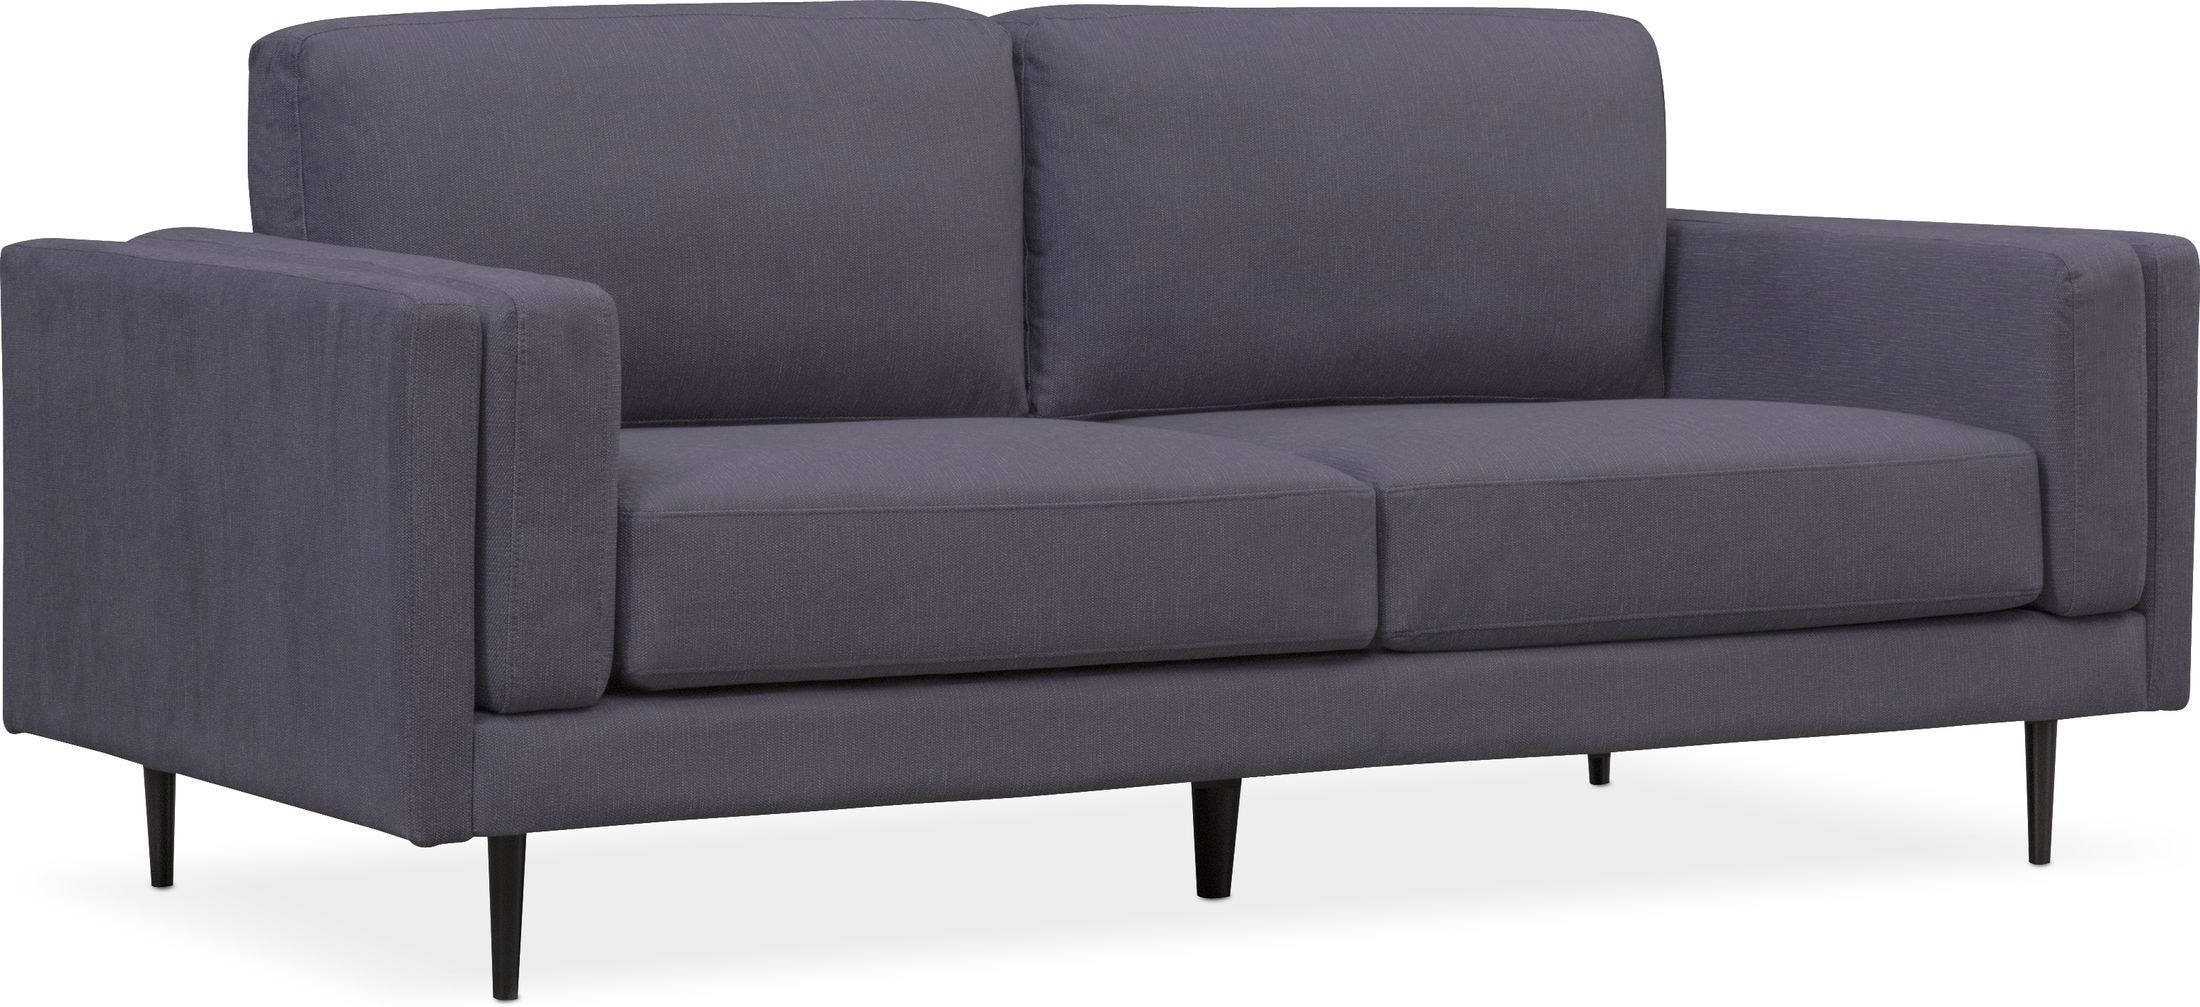 "Living Room Furniture - West End 86"" Sofa"